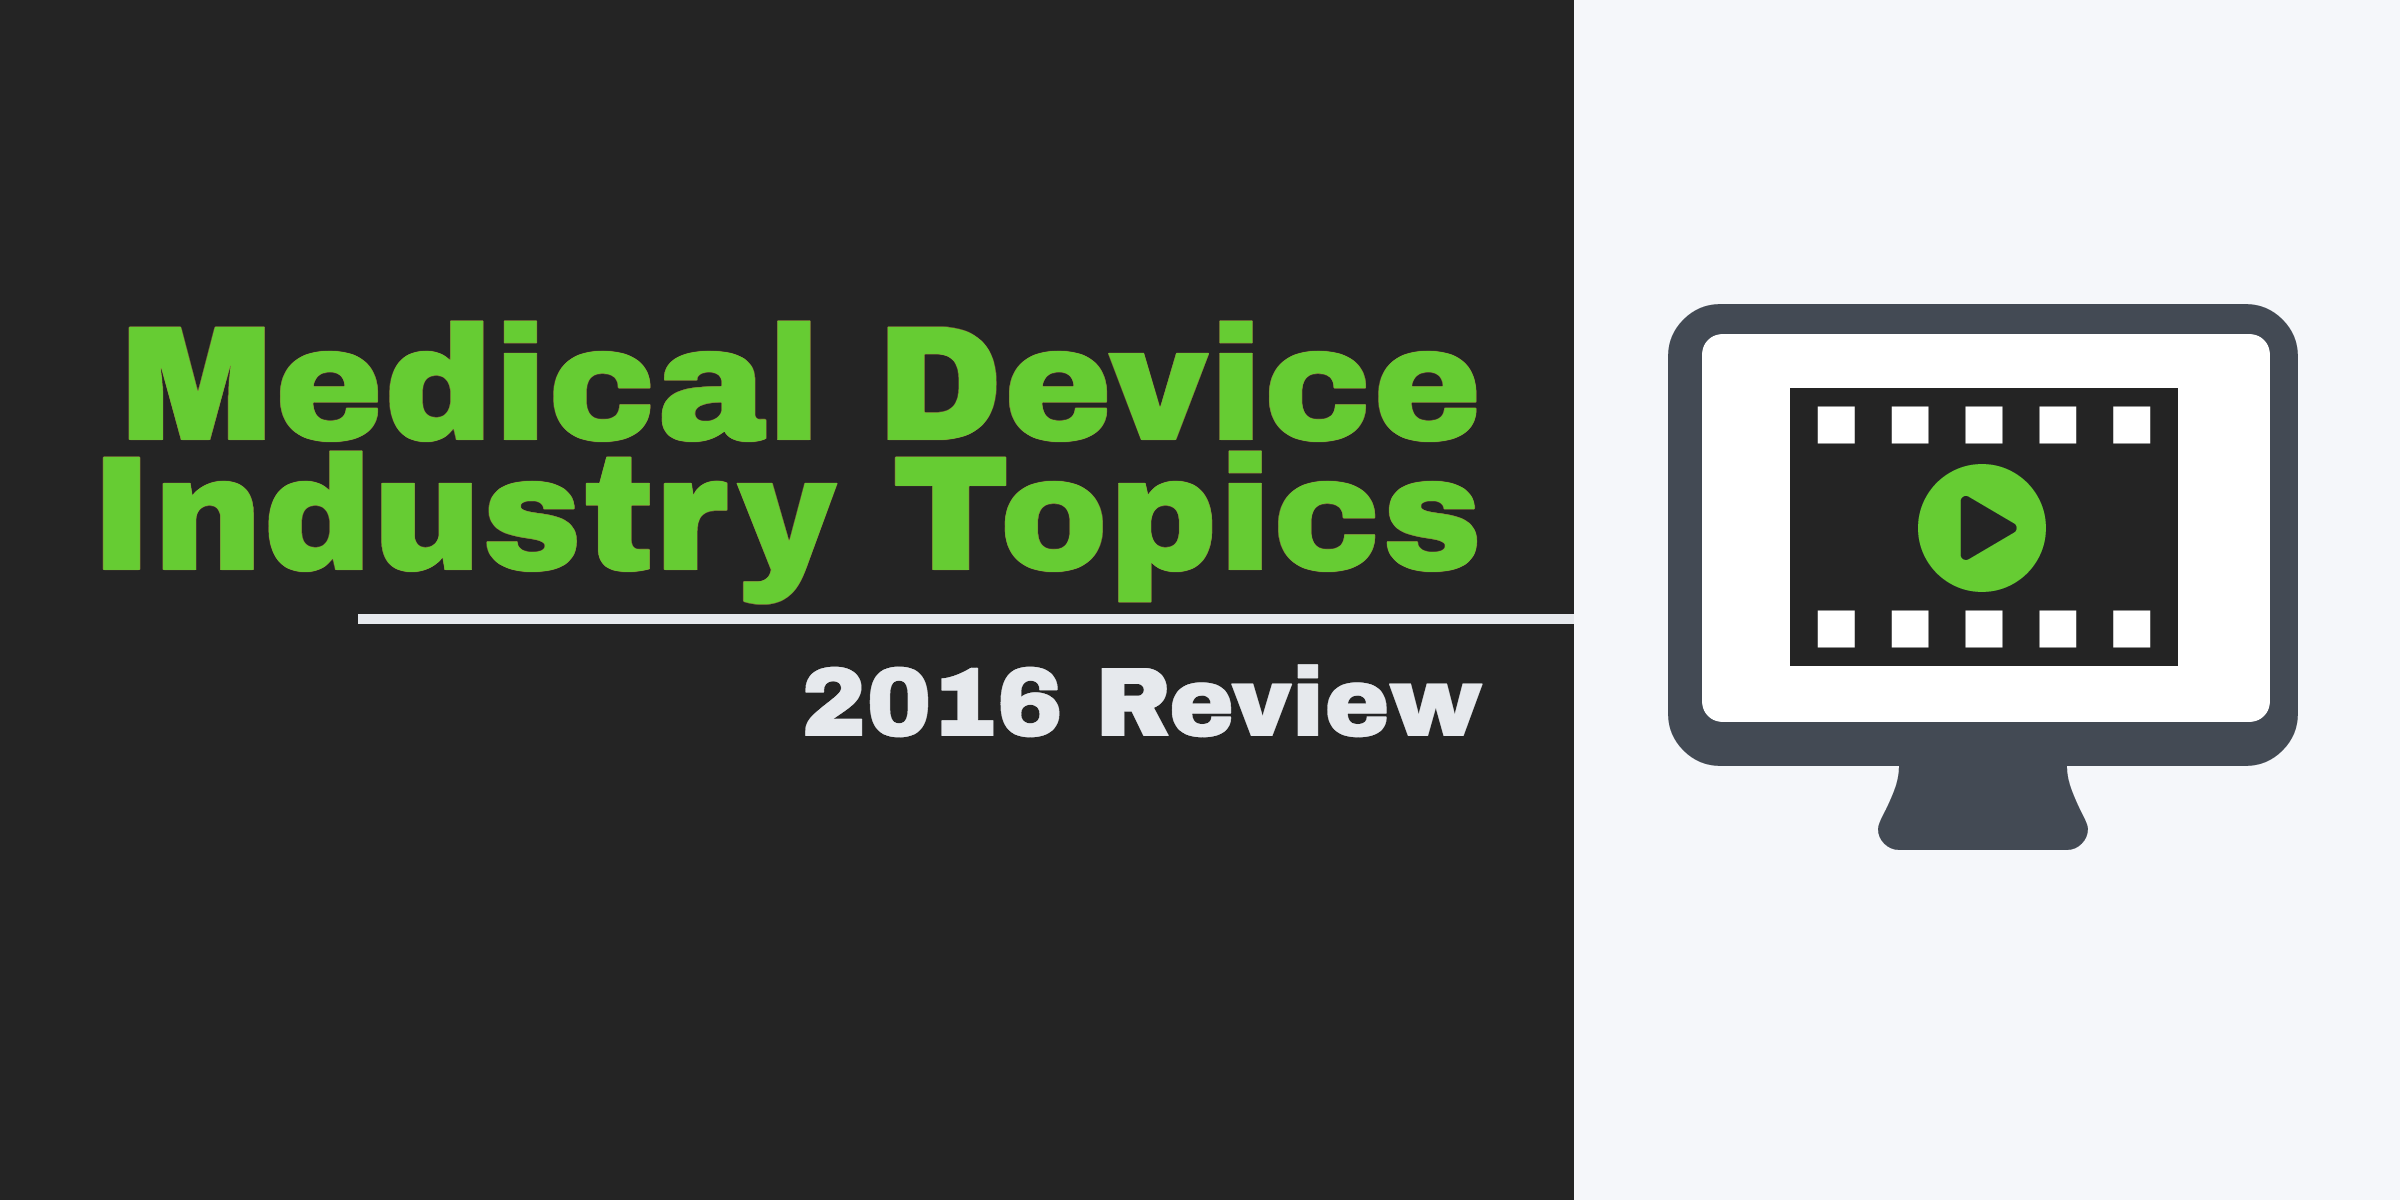 A Review of the Most Important Medical Device Industry Topics in 2016 - Featured Image